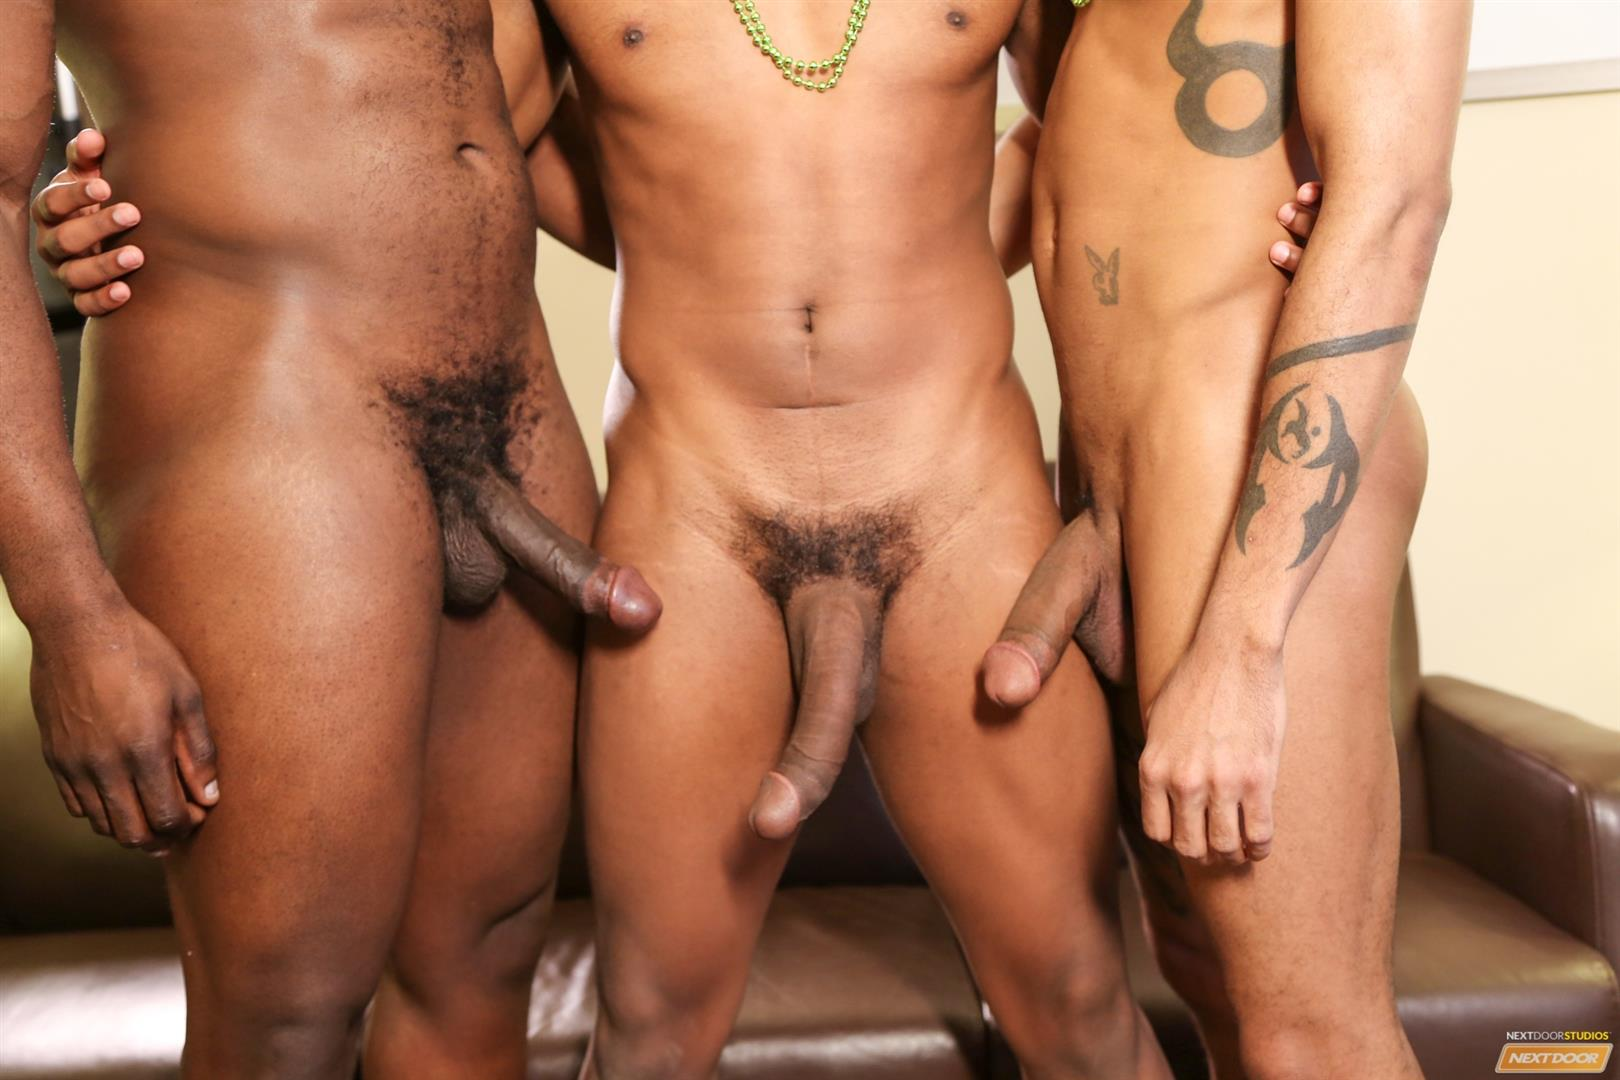 Next-Door-Ebony-Nubius-and-Jin-Powers-and-XL-Naked-Thugs-Threeway-Fucking-Amateur-Gay-Porn-06 Big Black Cock Threeway Suck and Fuck Thug Fest